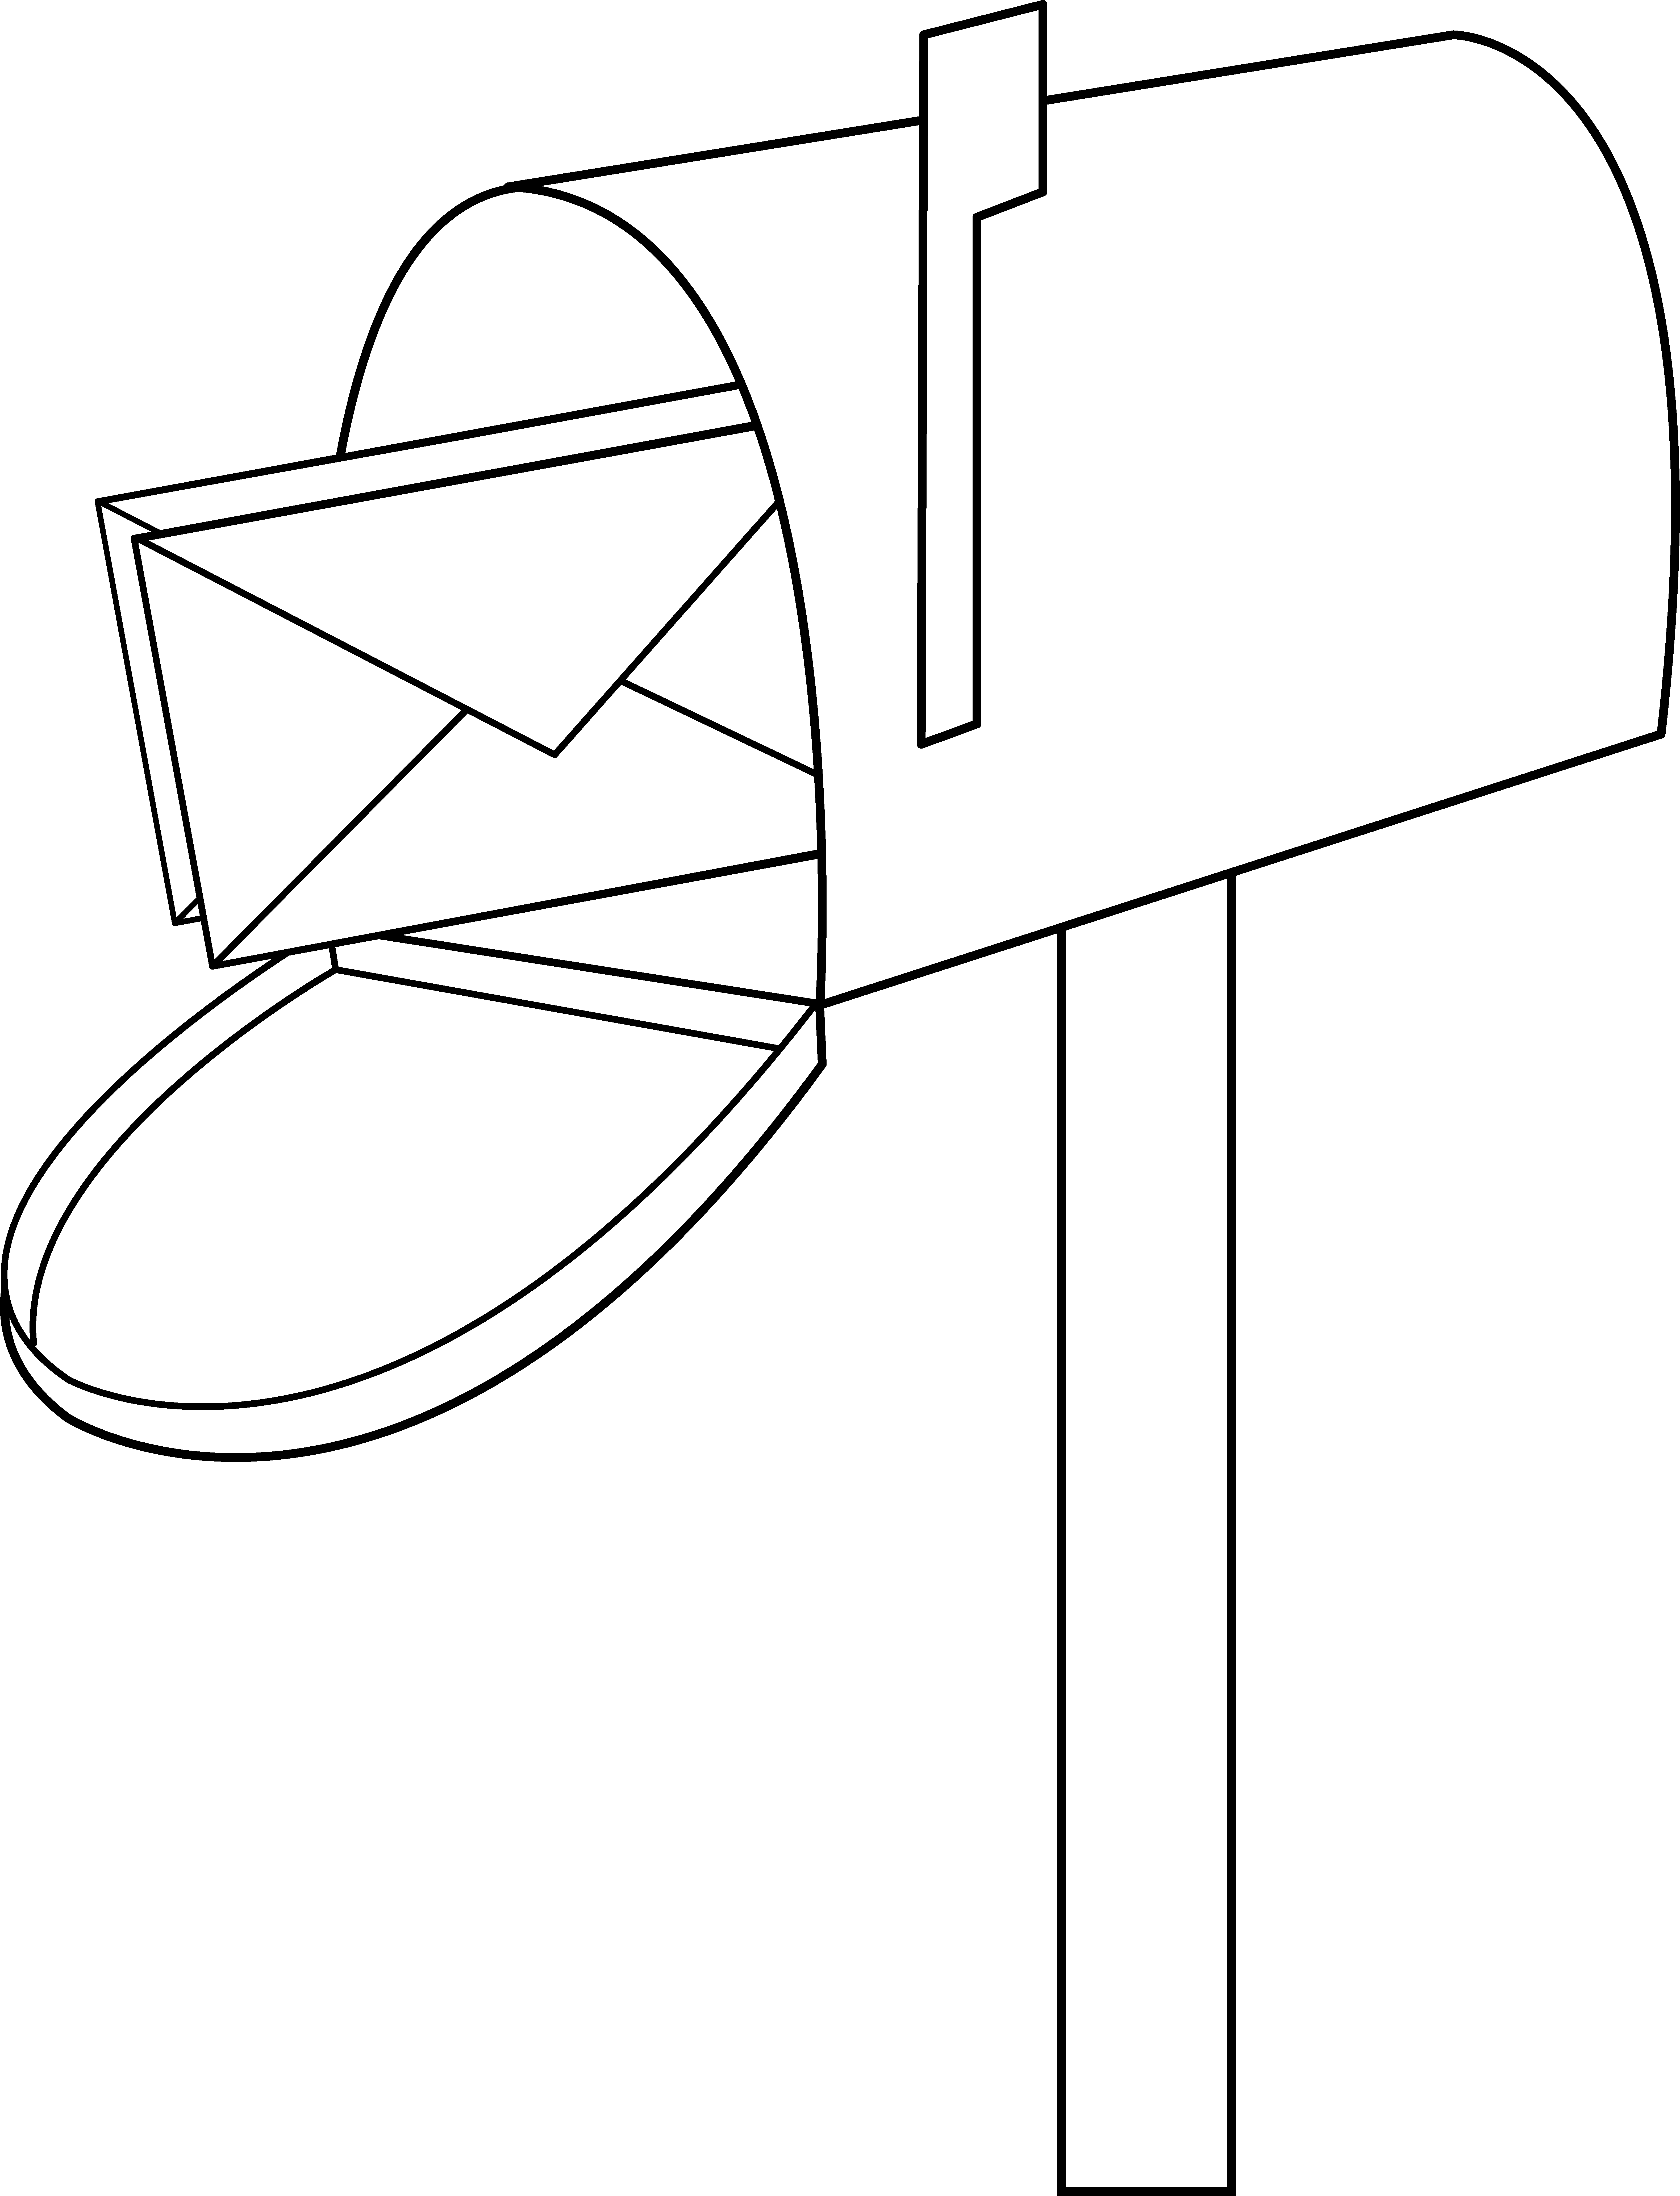 Mailbox 8 Pics Of Mail Cartoon Coloring Page Mail Clip Art Black Coloring Books Cartoon Coloring Pages Coloring Pages